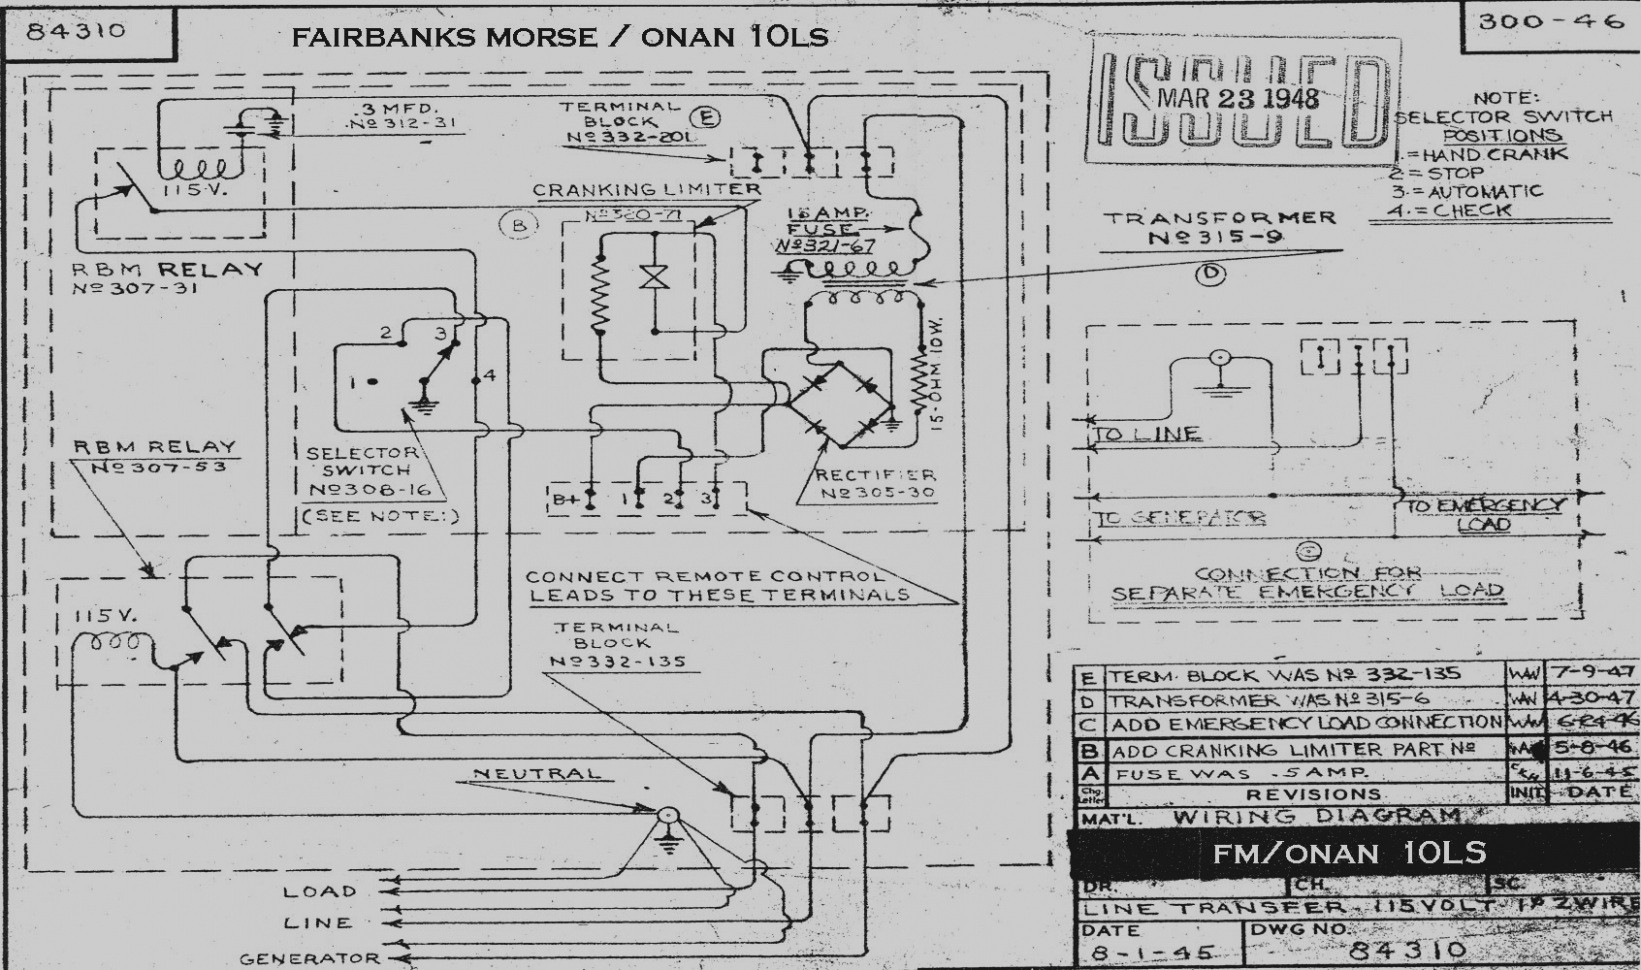 onan 4000 generator wiring diagram 2001 honda civic parts p220 18 6 stromoeko de schematic rh 154 twizer co old generators diagrams